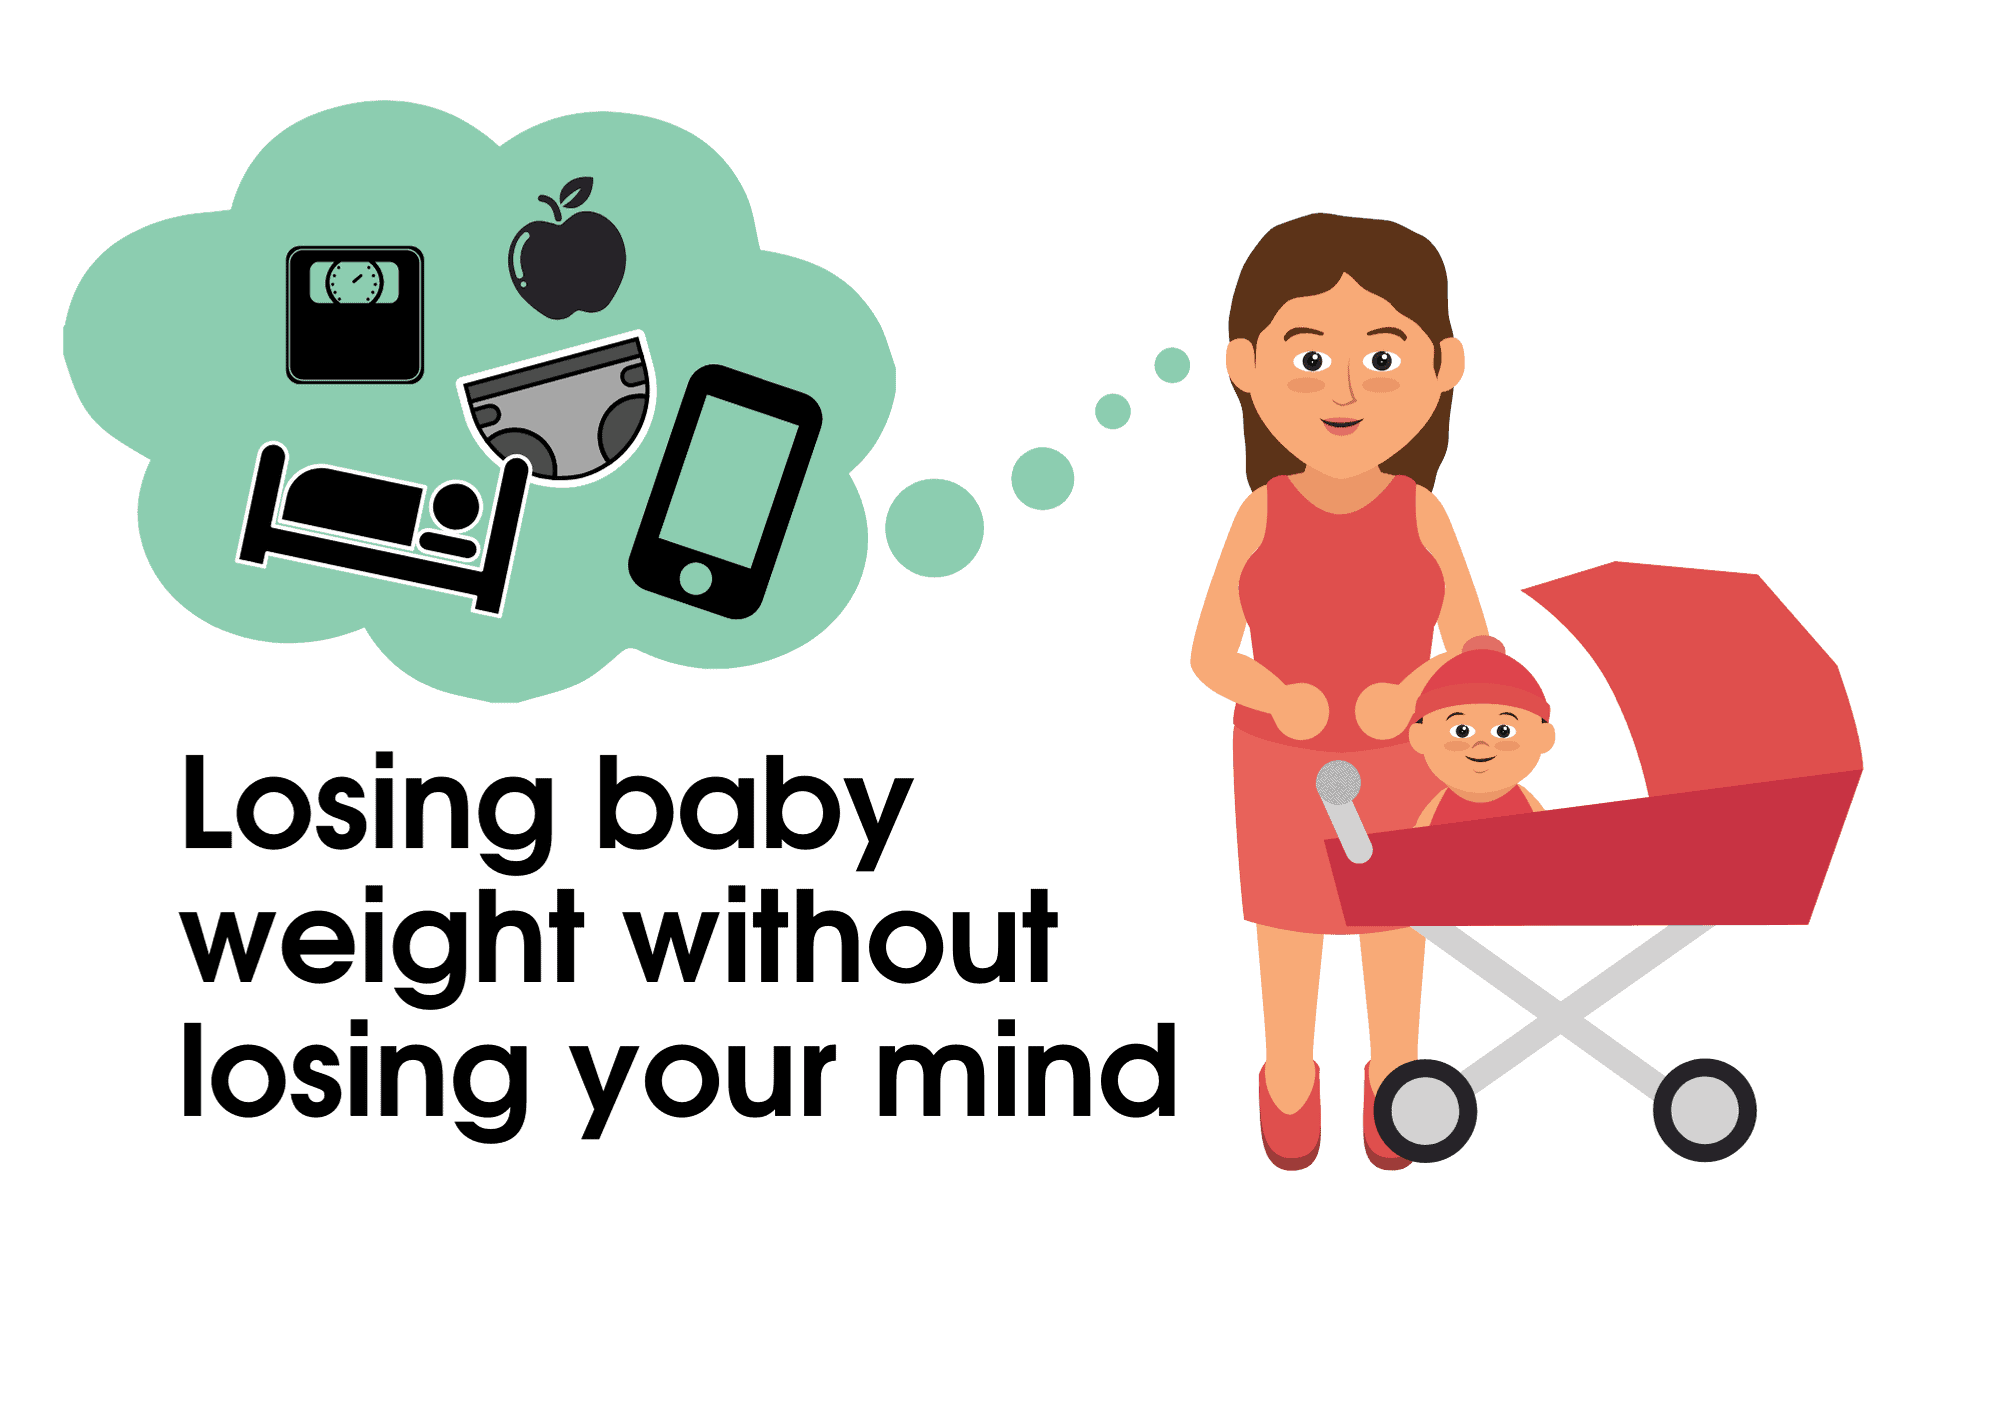 How to Lose Baby Weight